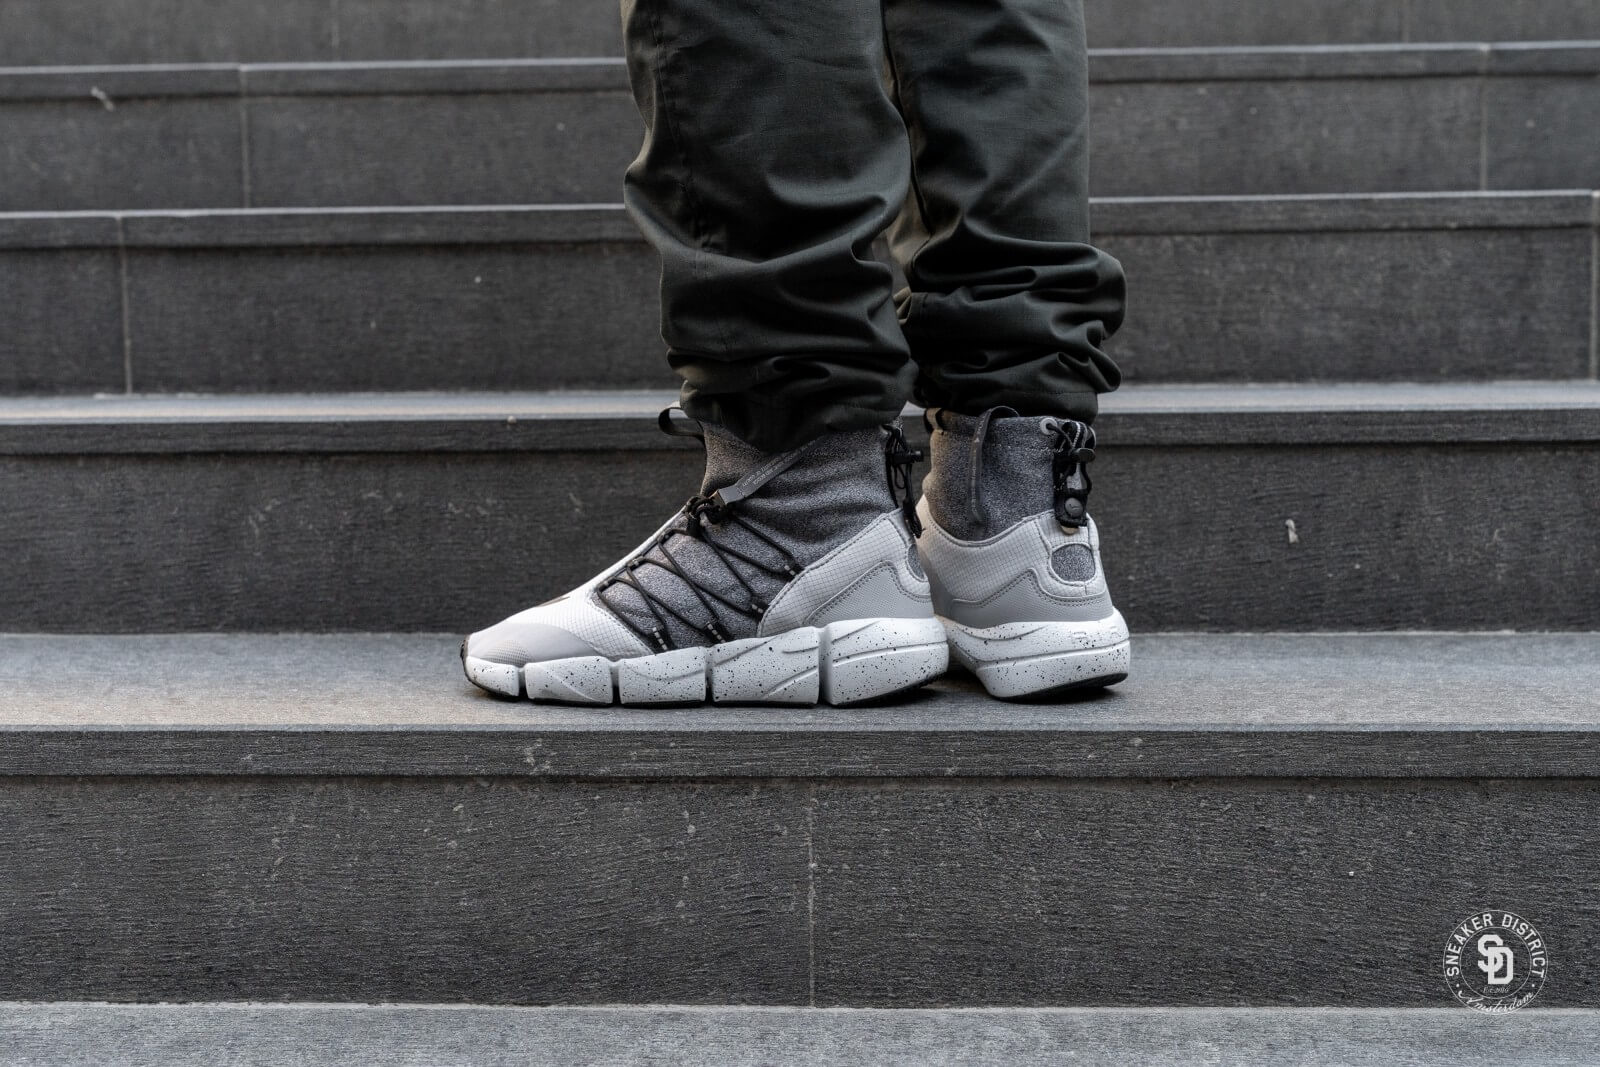 Nike Air Footscape Mid Utility DM Wolf GreyBlack Cool Grey Pure Platinum AH8689 002